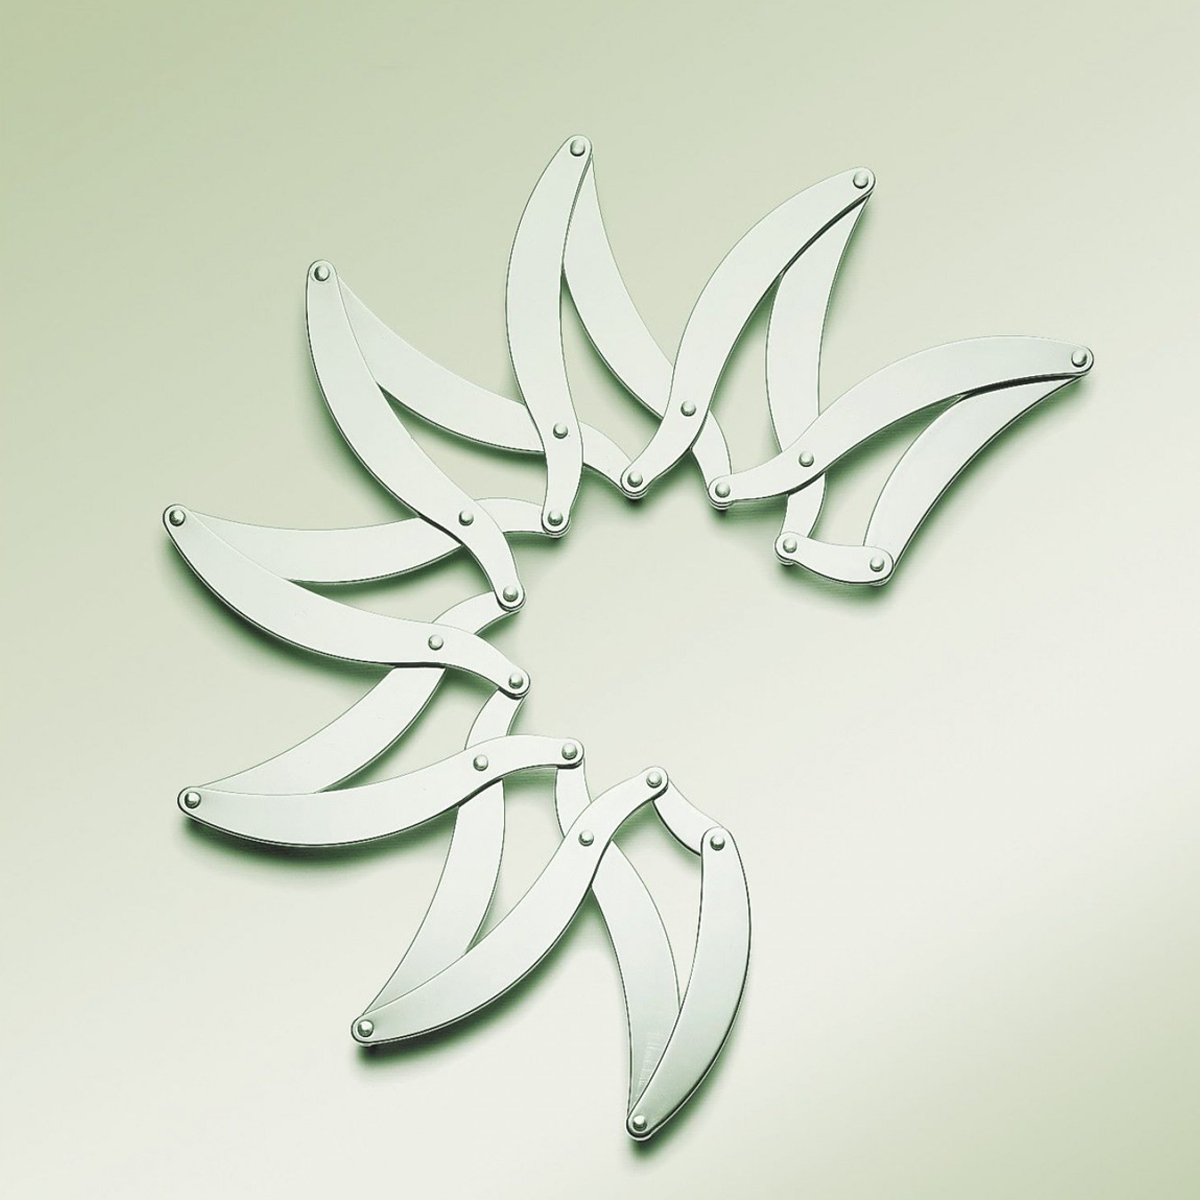 Alessi - Trivet Augh Stainless Steel 2